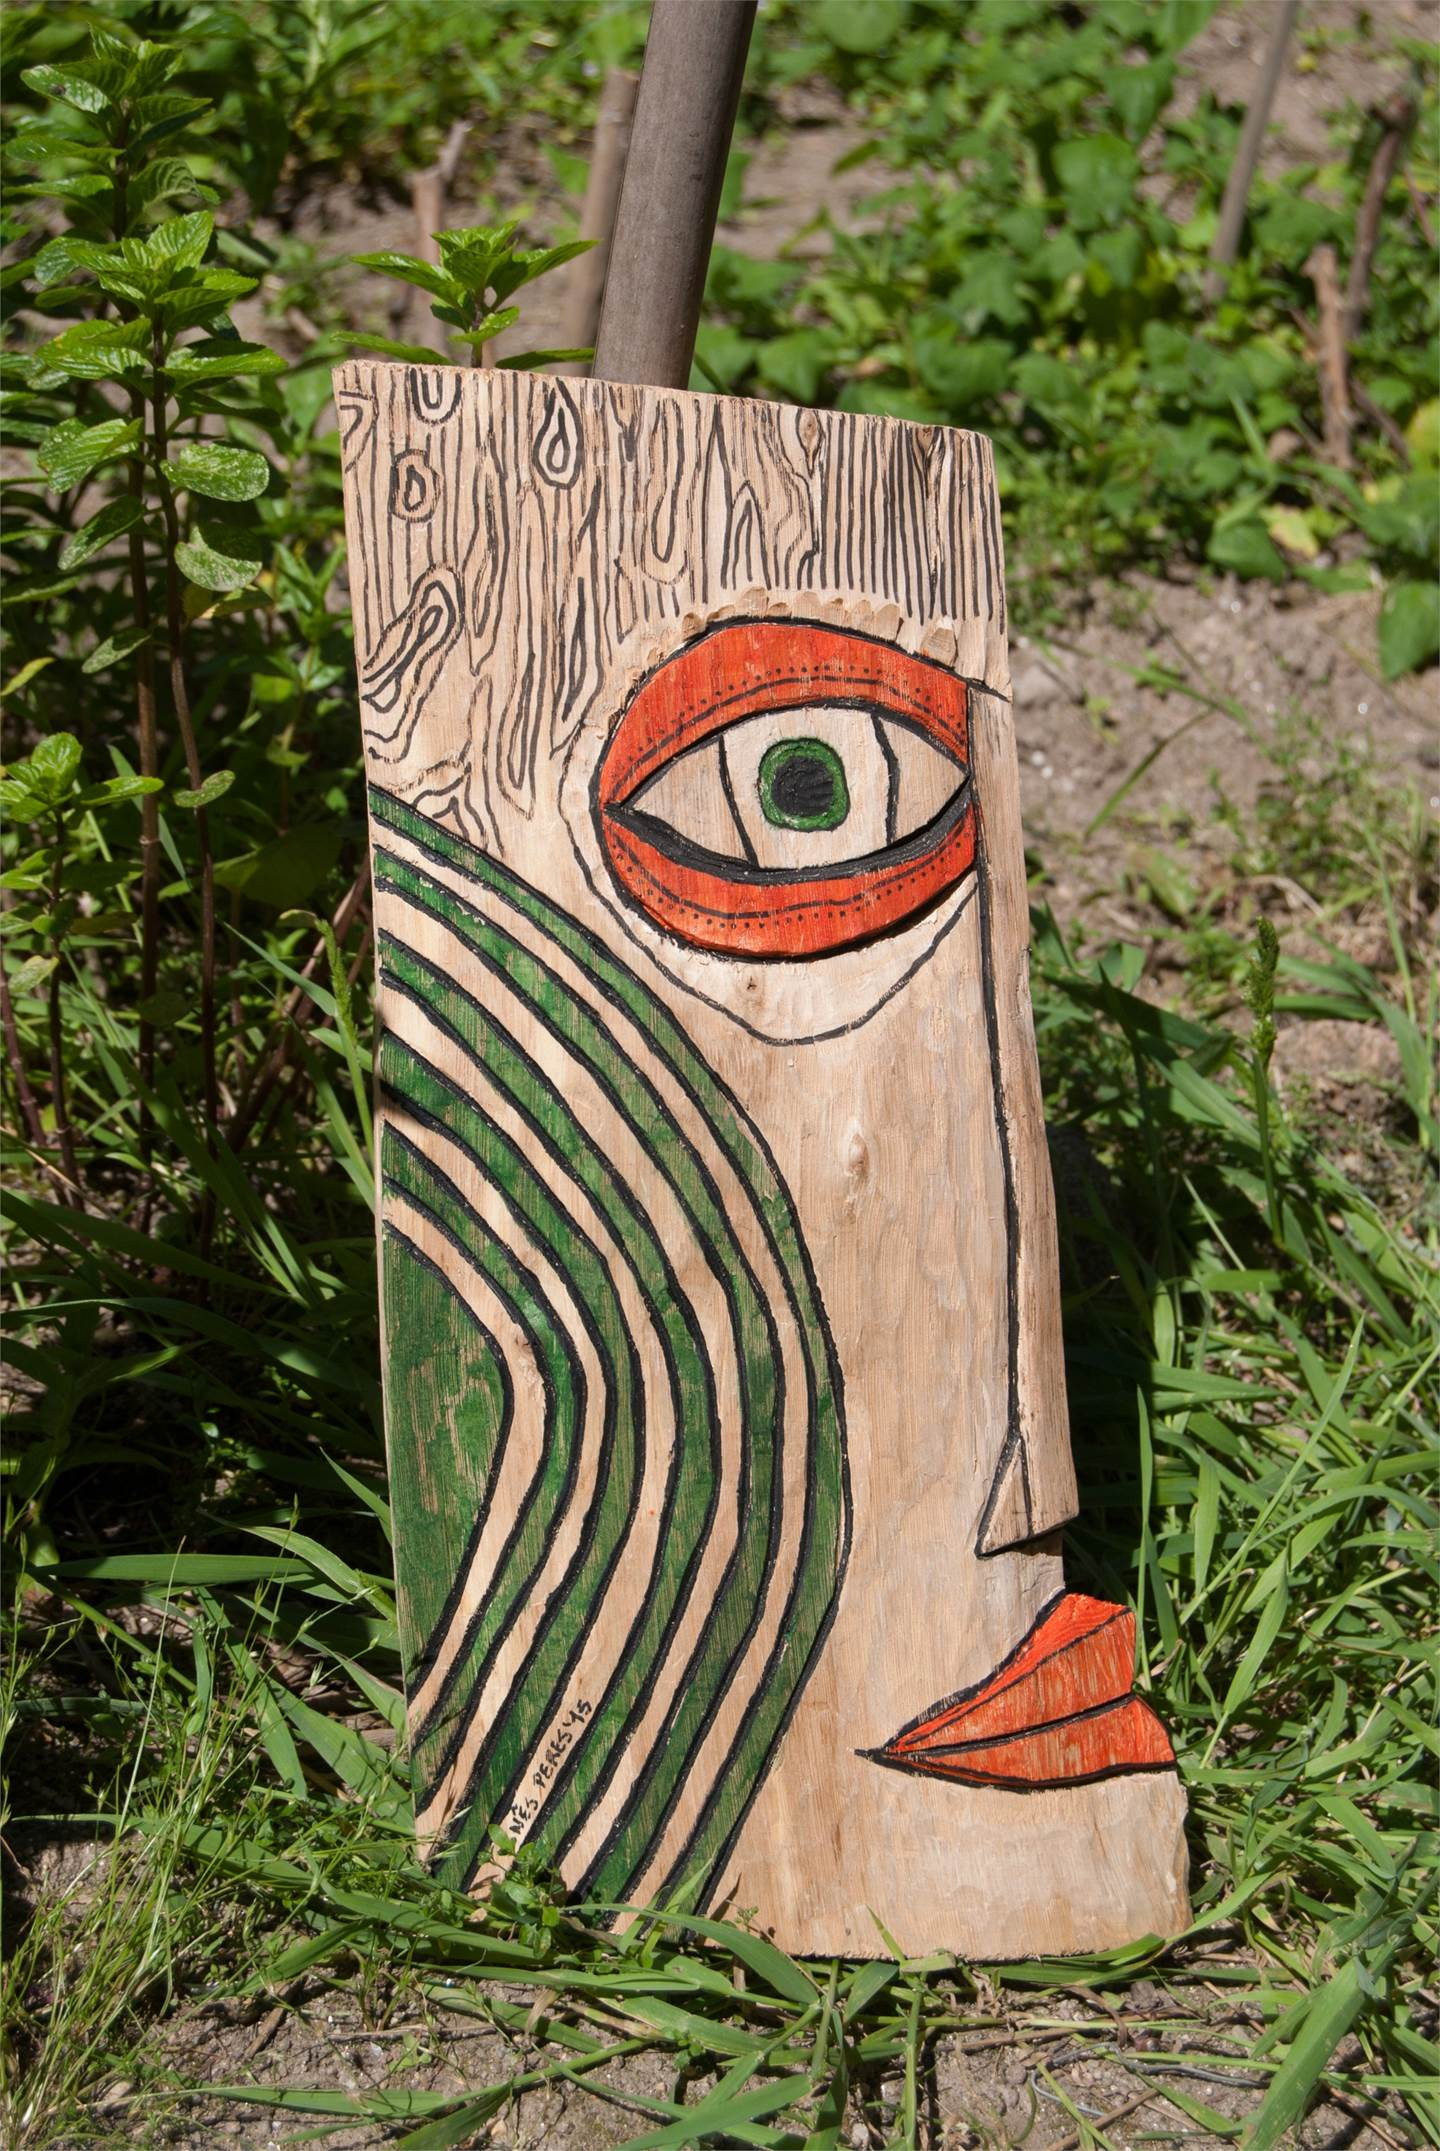 Wood mask 2, original Abstract Mixed Technique Sculpture by Inês Peres